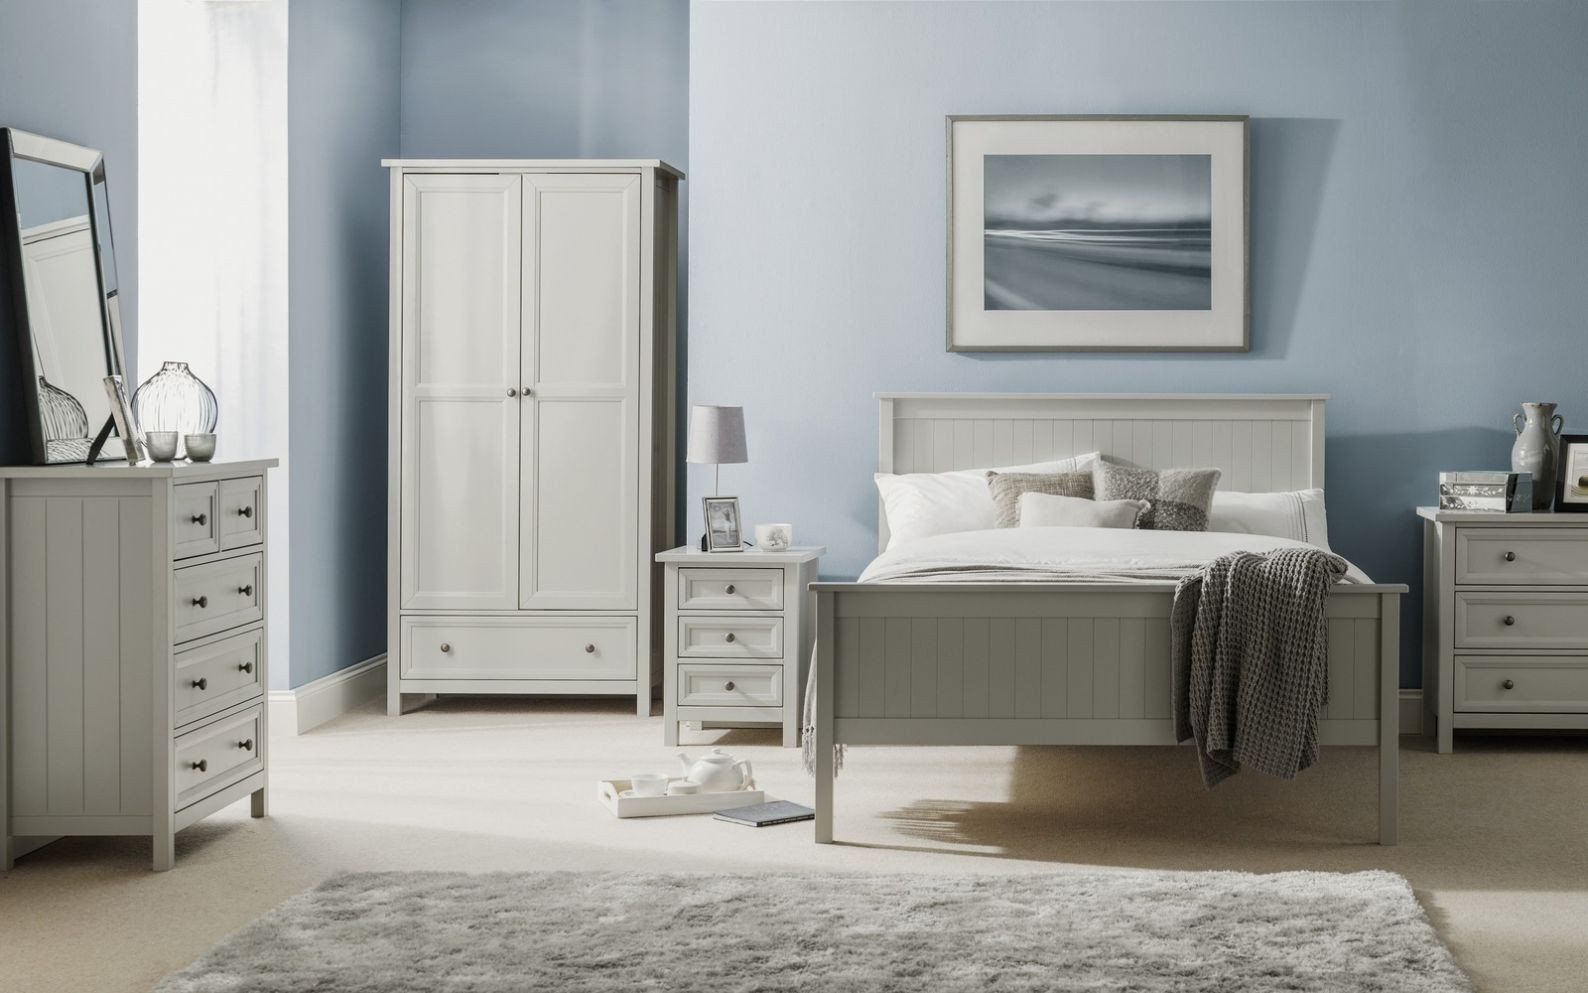 White Gloss Bedroom Furniture Luxury Julian Bowen Monaco Grey High Gloss Bedroom Range Bedsides